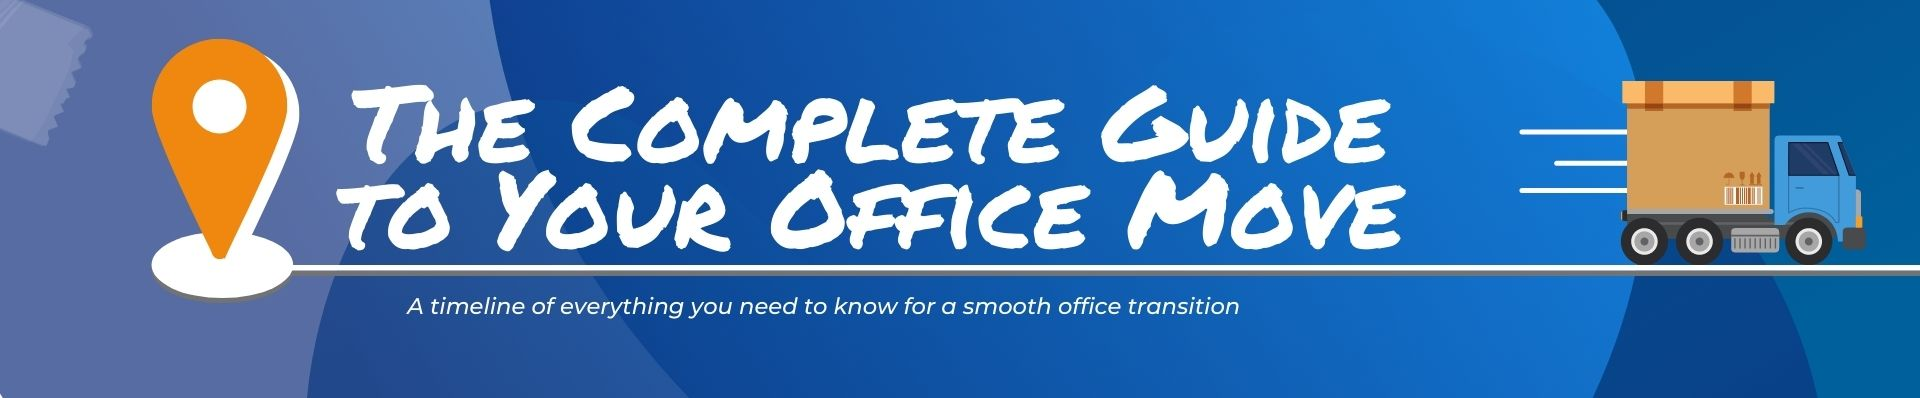 Complete guide to your office move banner image